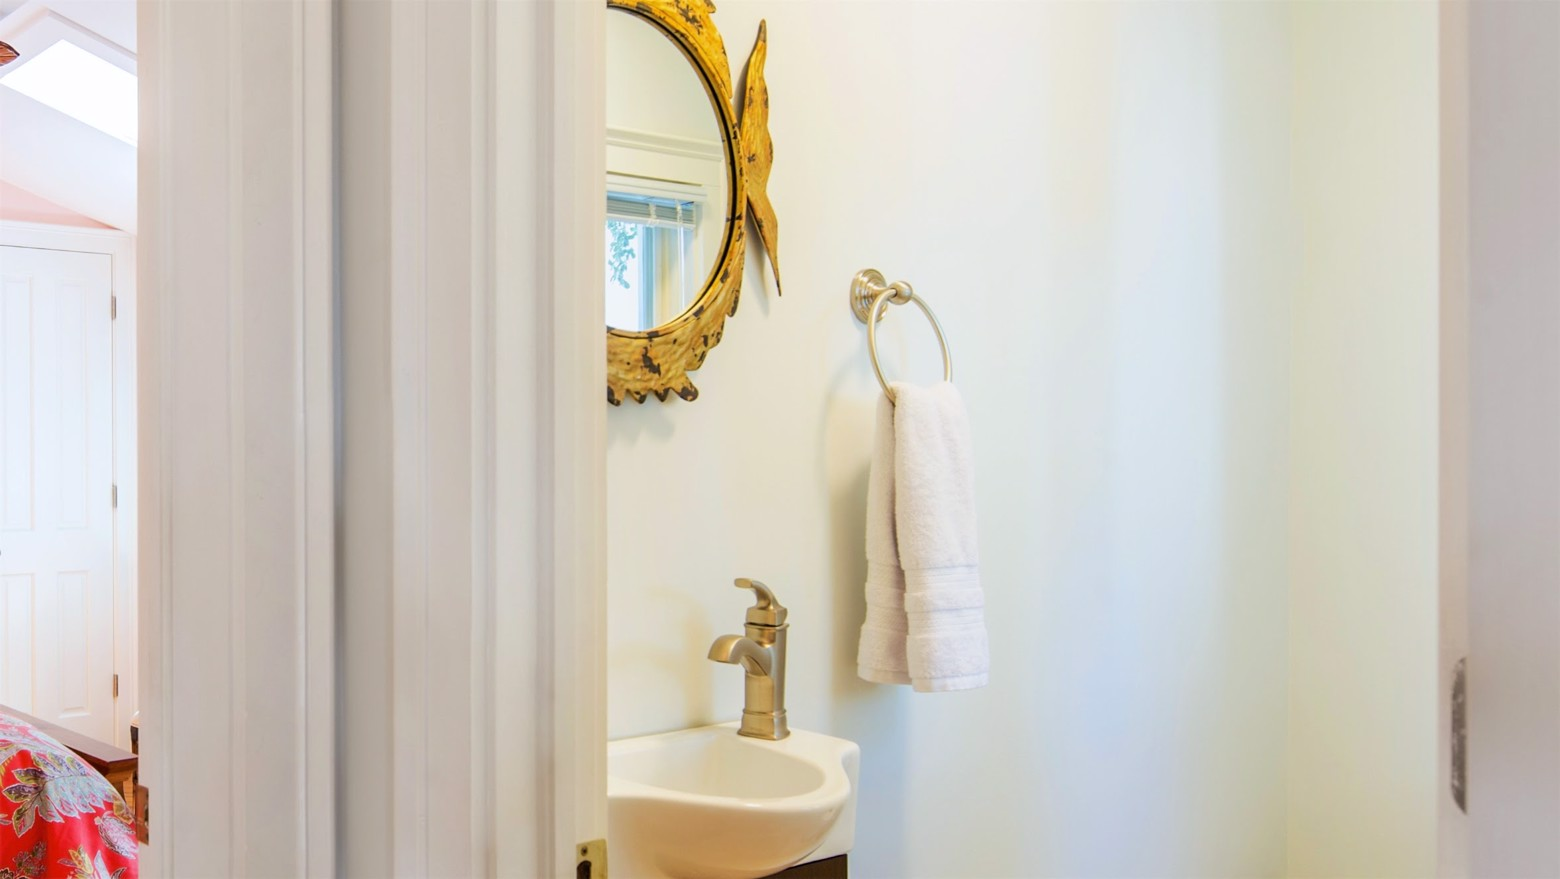 4-733LOVELANE-16x9-powderroom.jpg image